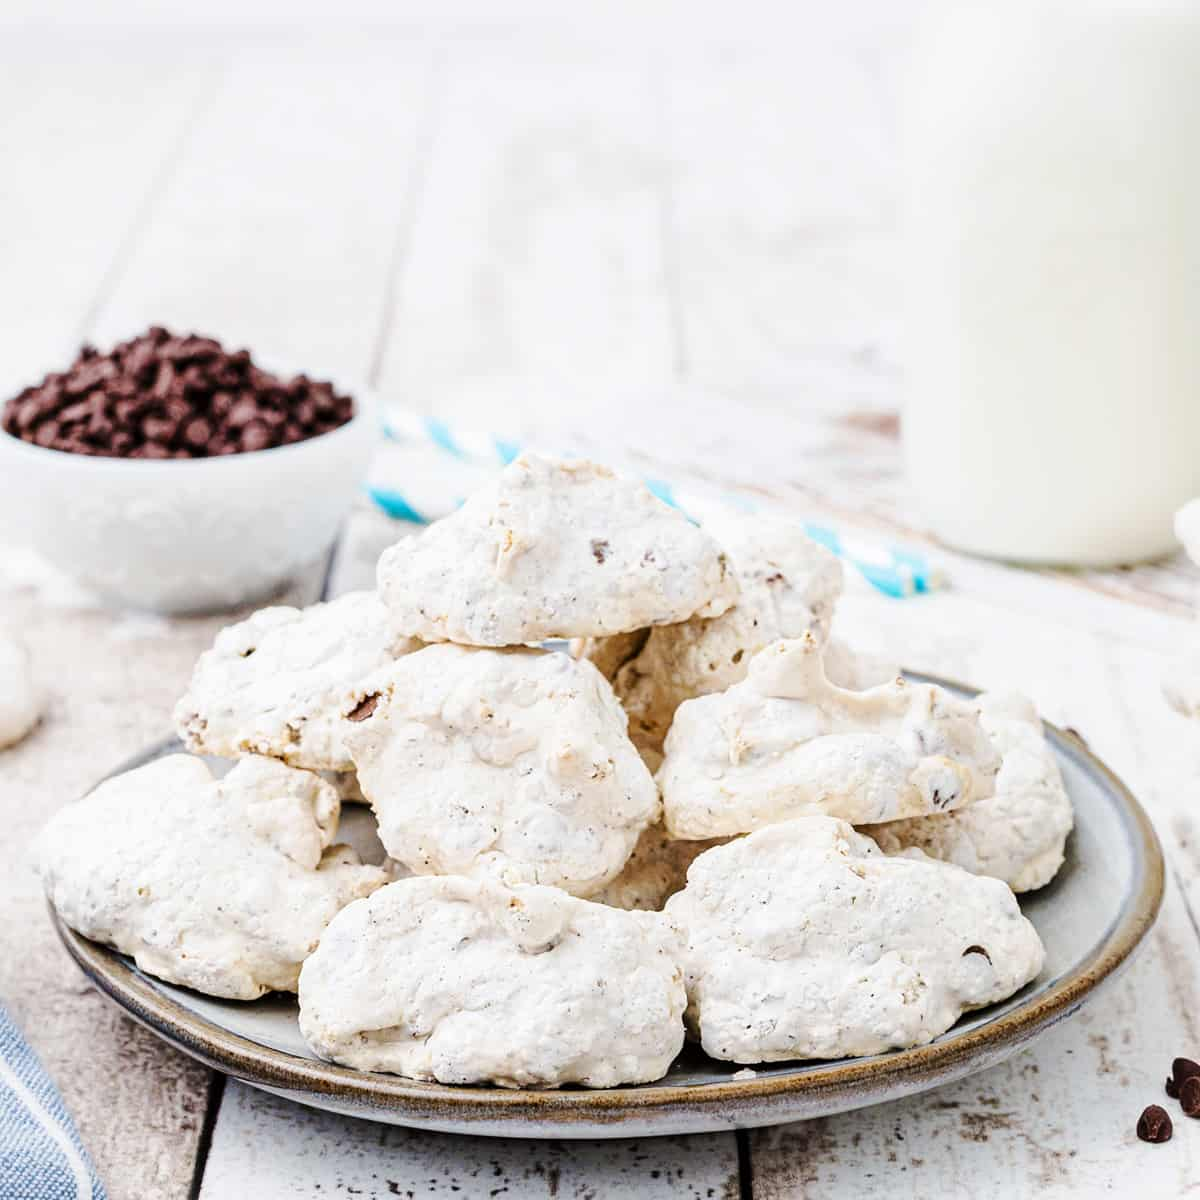 Forgotten cookies on a serving plate with milk and chocolate chips in the background.